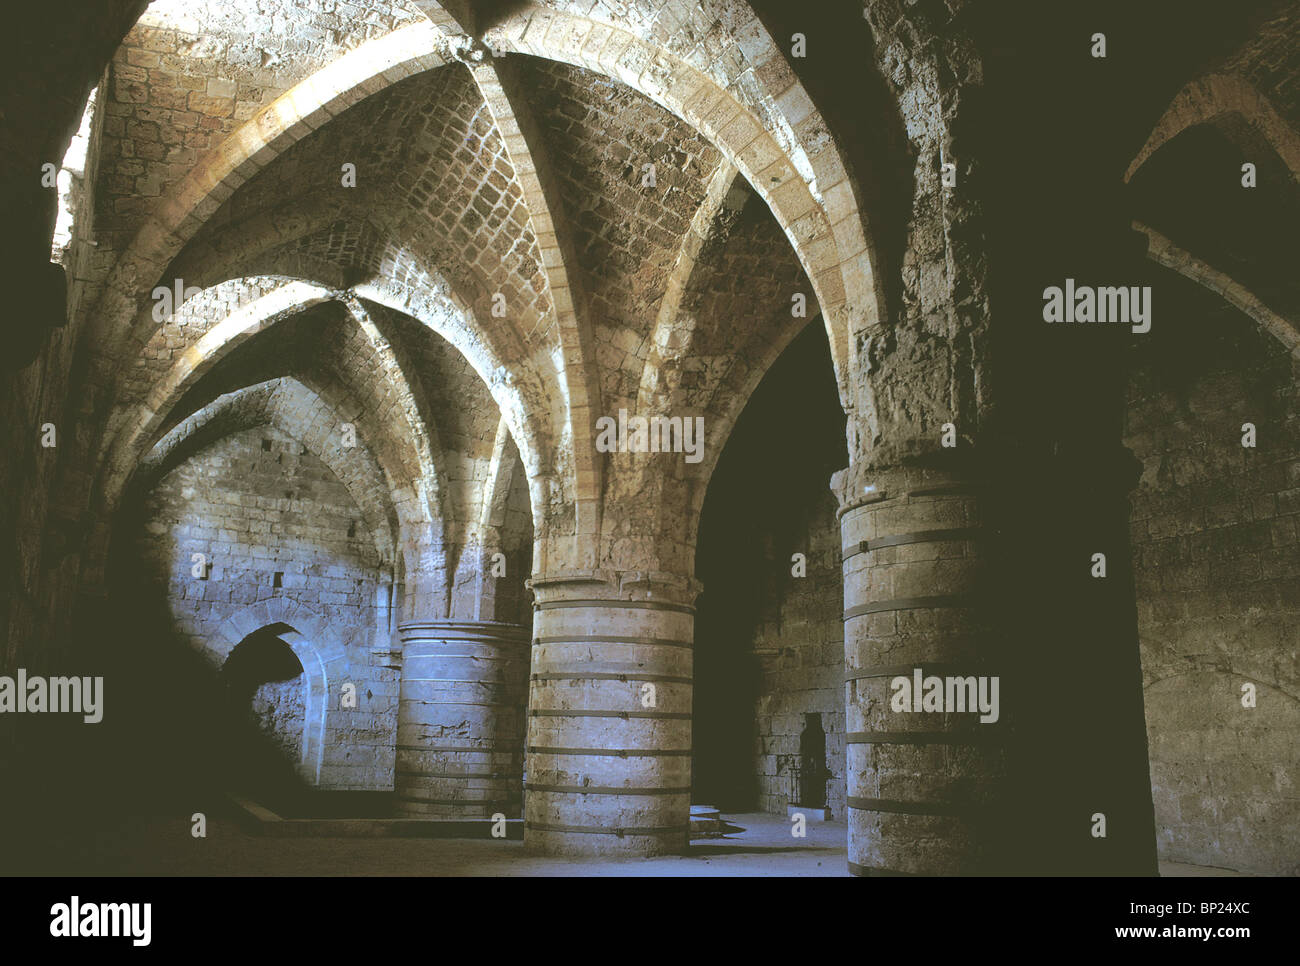 684. ACCO - CRUSADER ARCHITECTURE, REFLECTORY IN THE CRYPT OF ST. JOHN - Stock Image